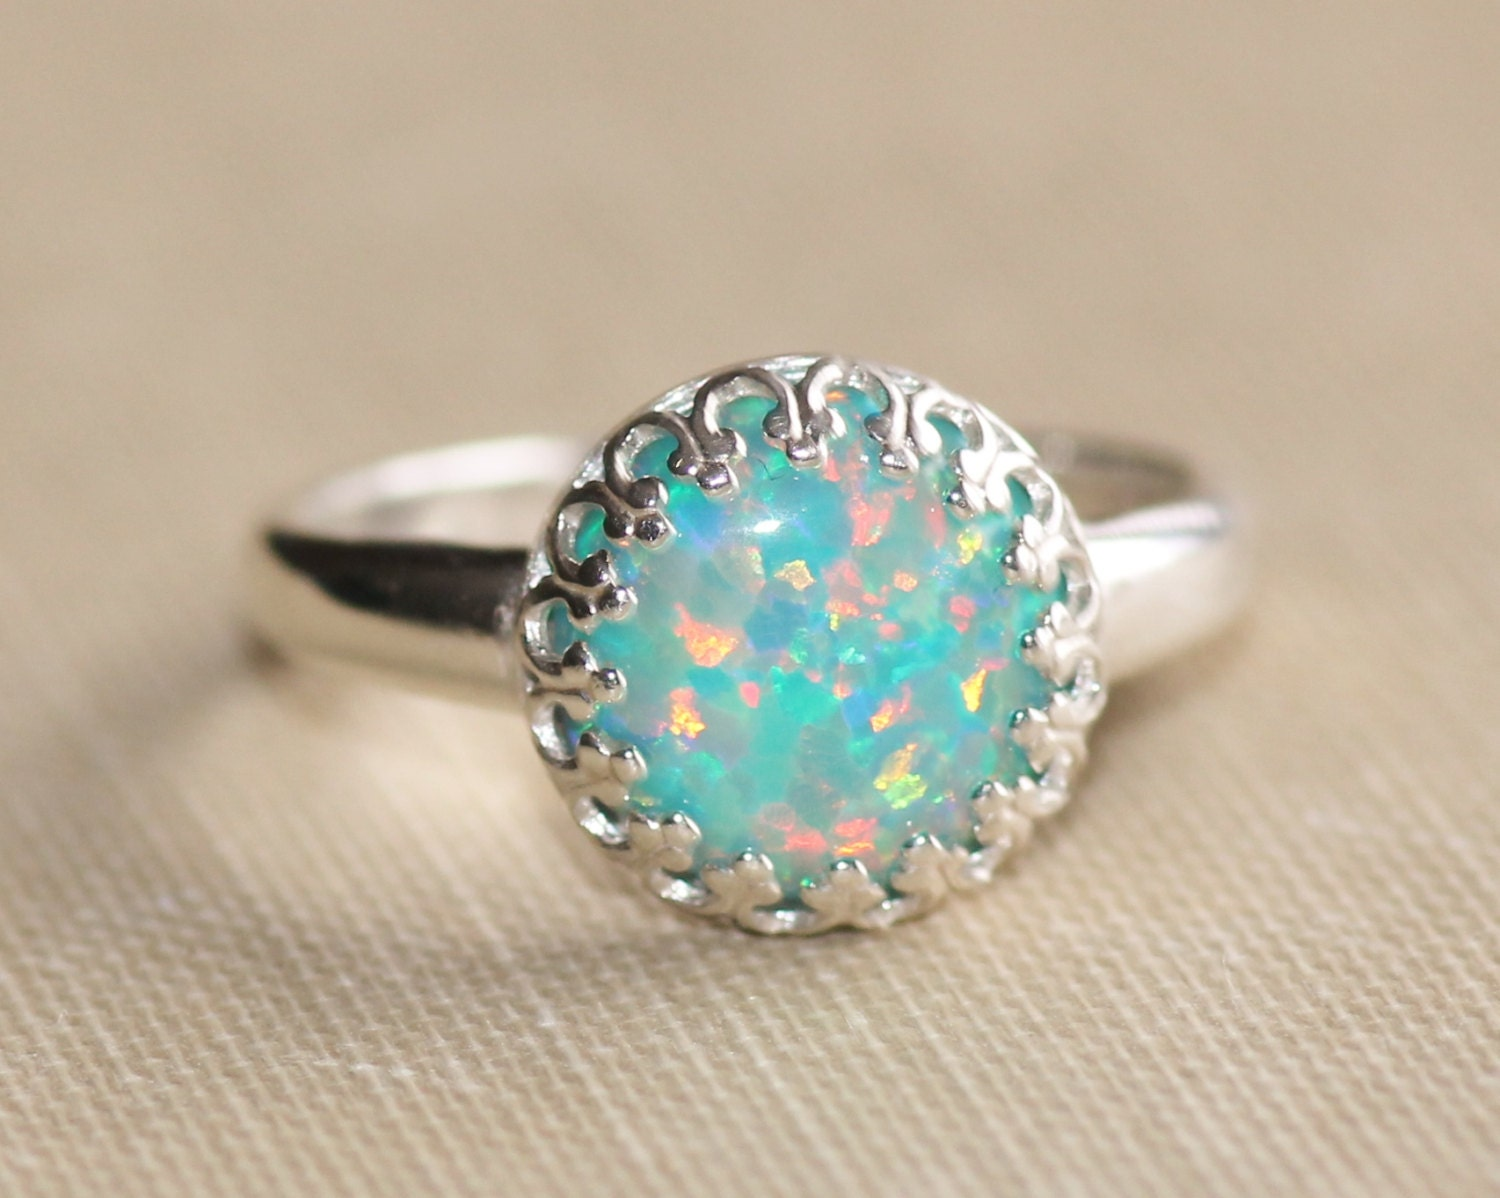 australian for solid rbvajfihgfeat product from gift ring promotion natural opal silver woman sterling stone gemstone